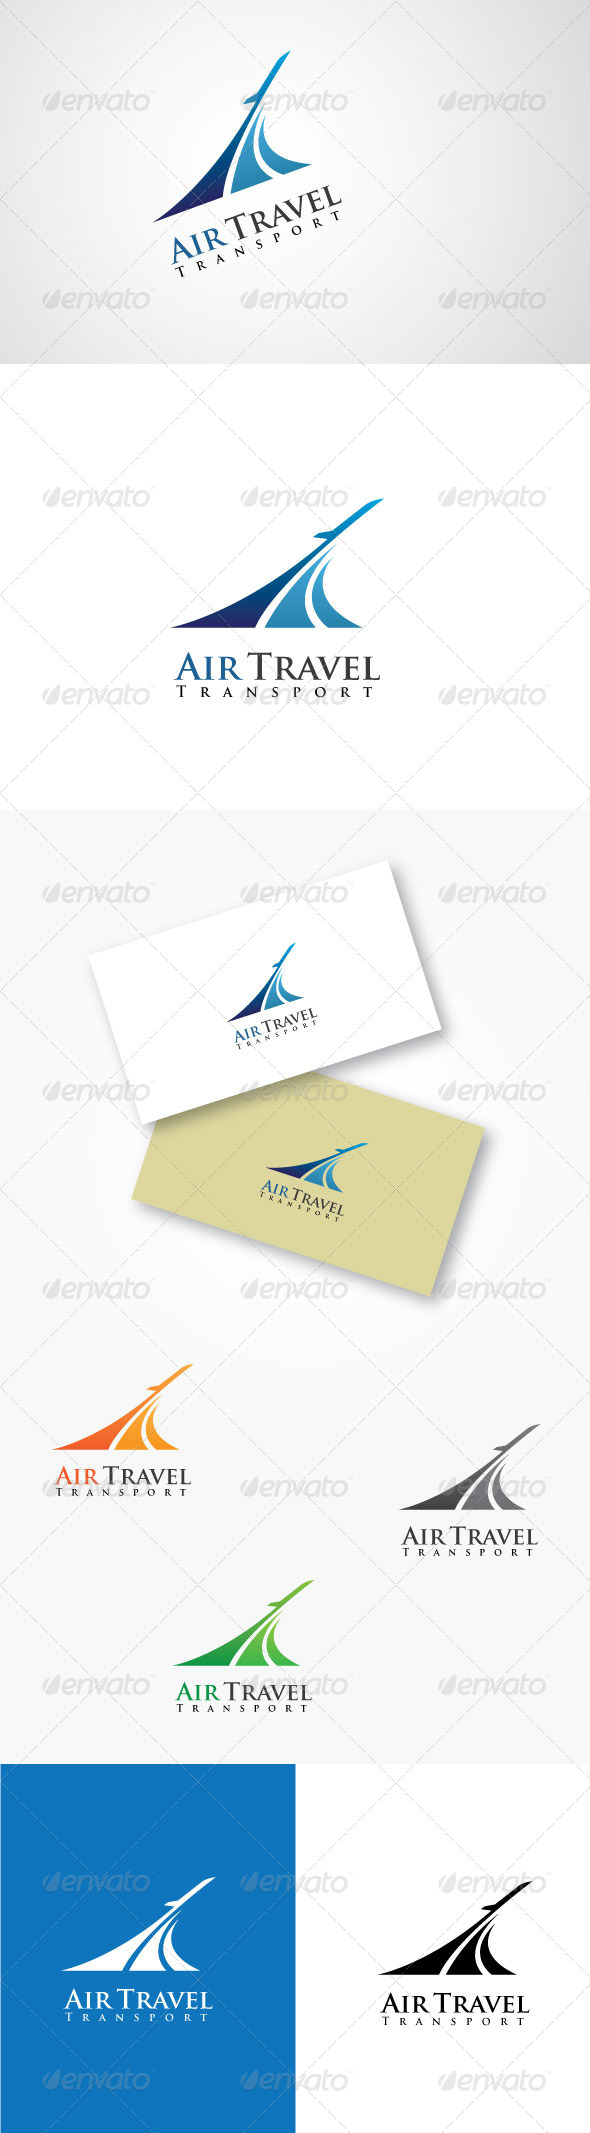 GraphicRiver Air Travel Transport Logo 5269028